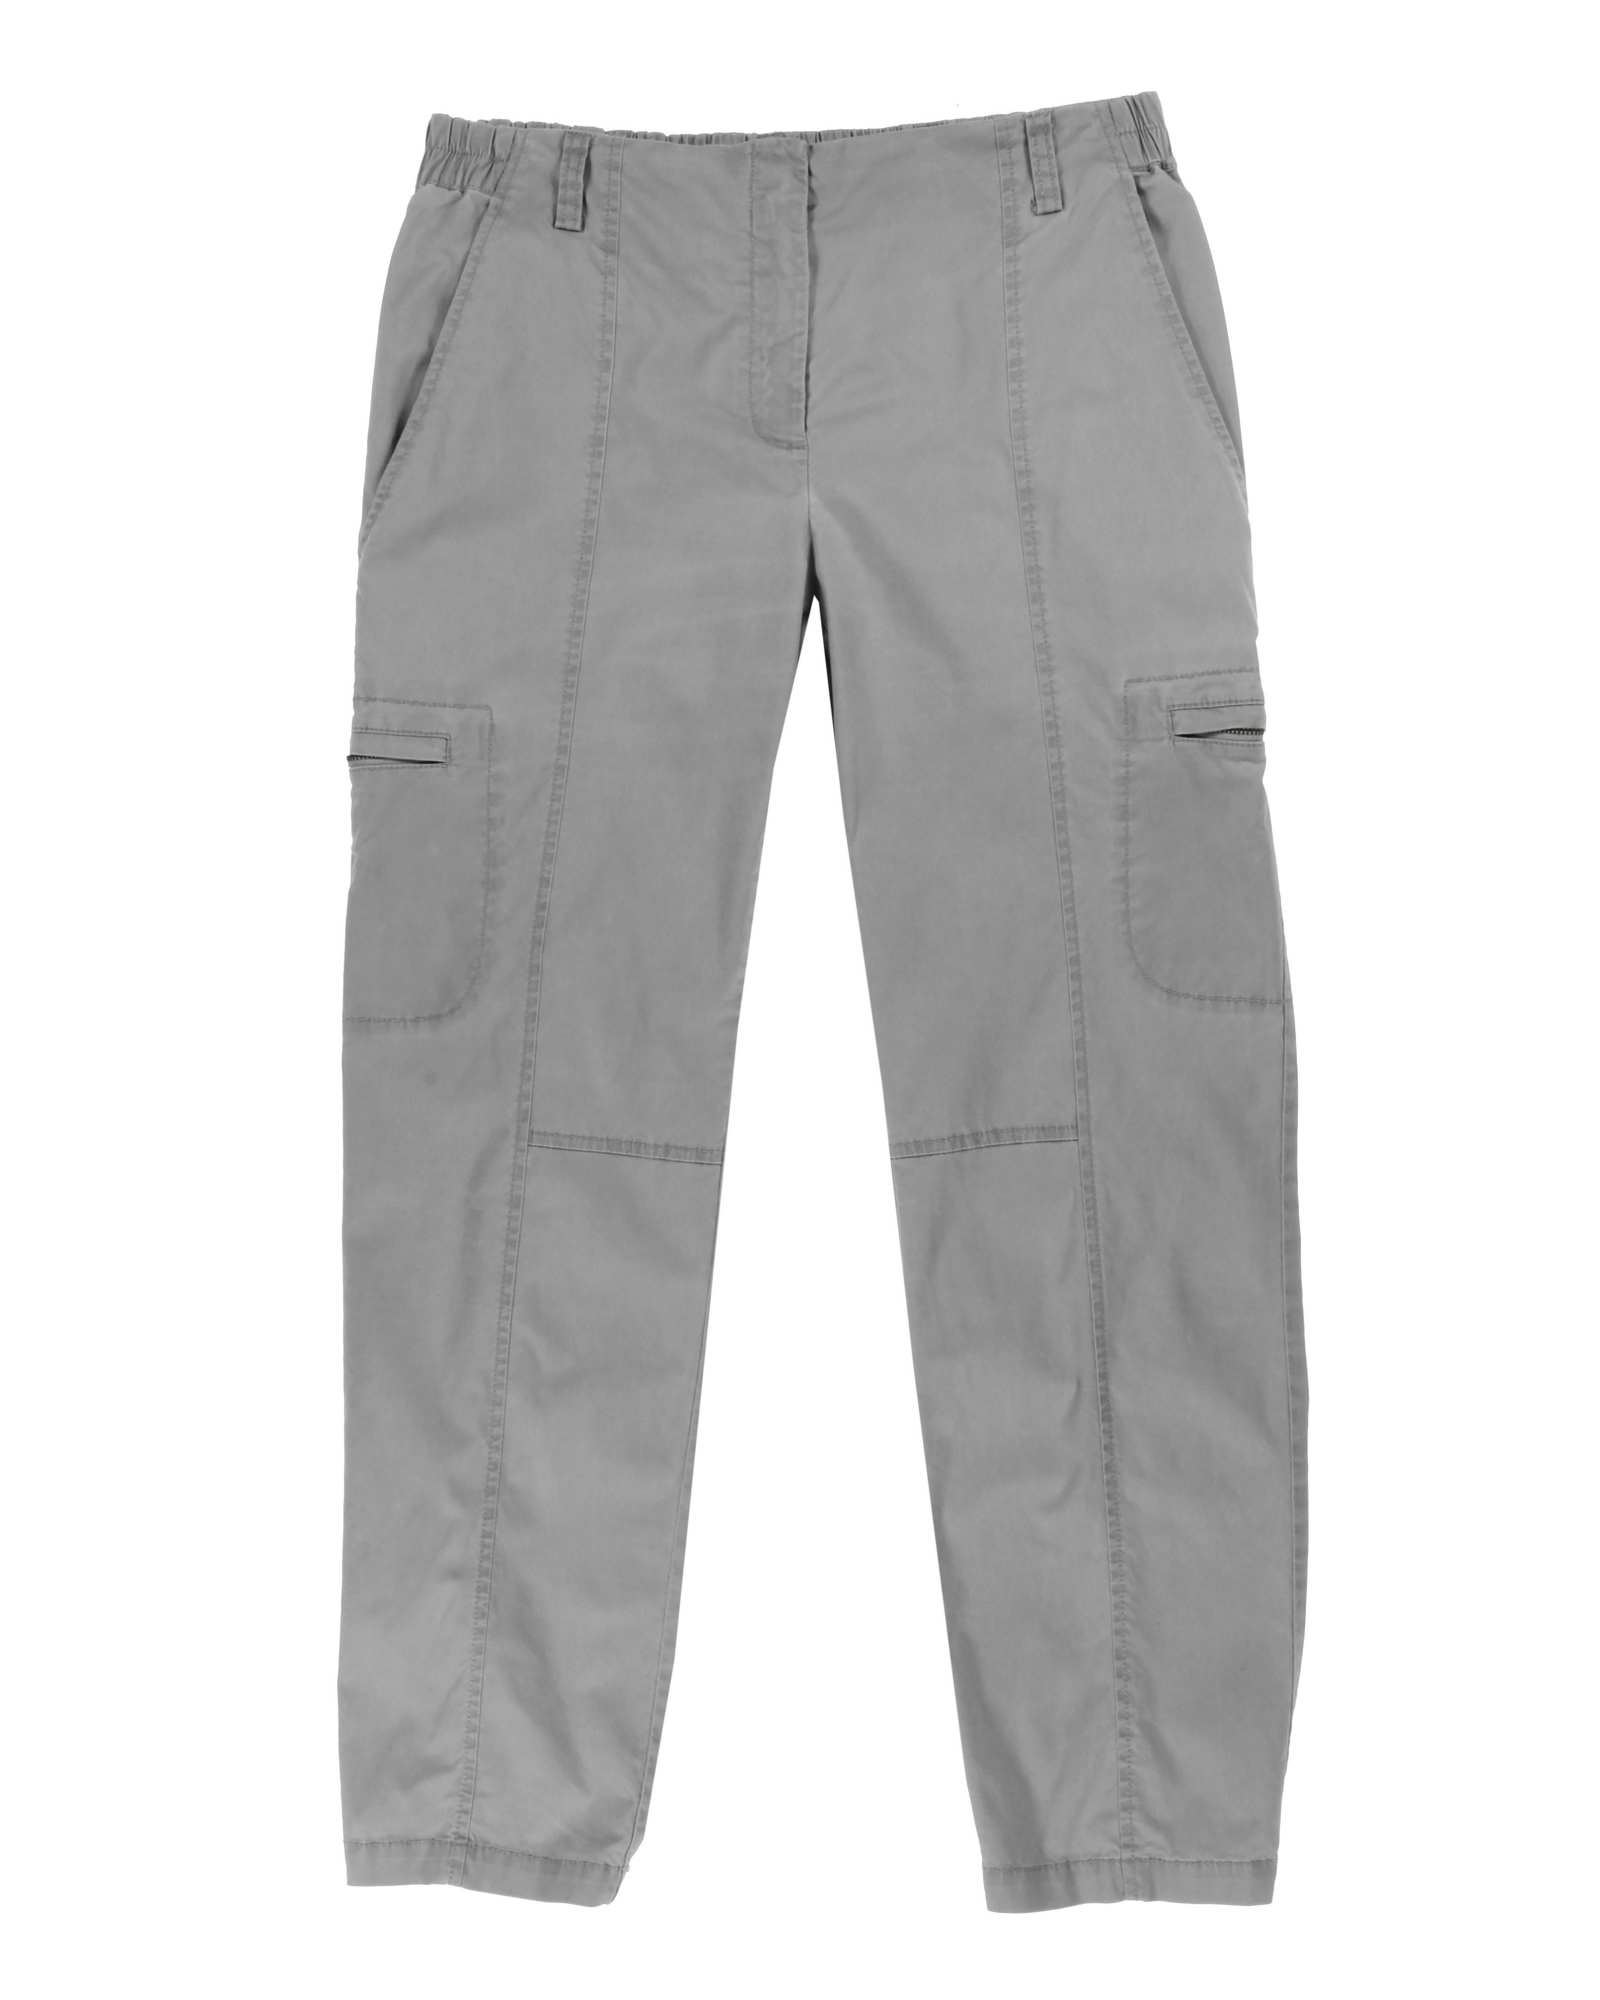 Washed Organic Cotton Tencel Twill Pant